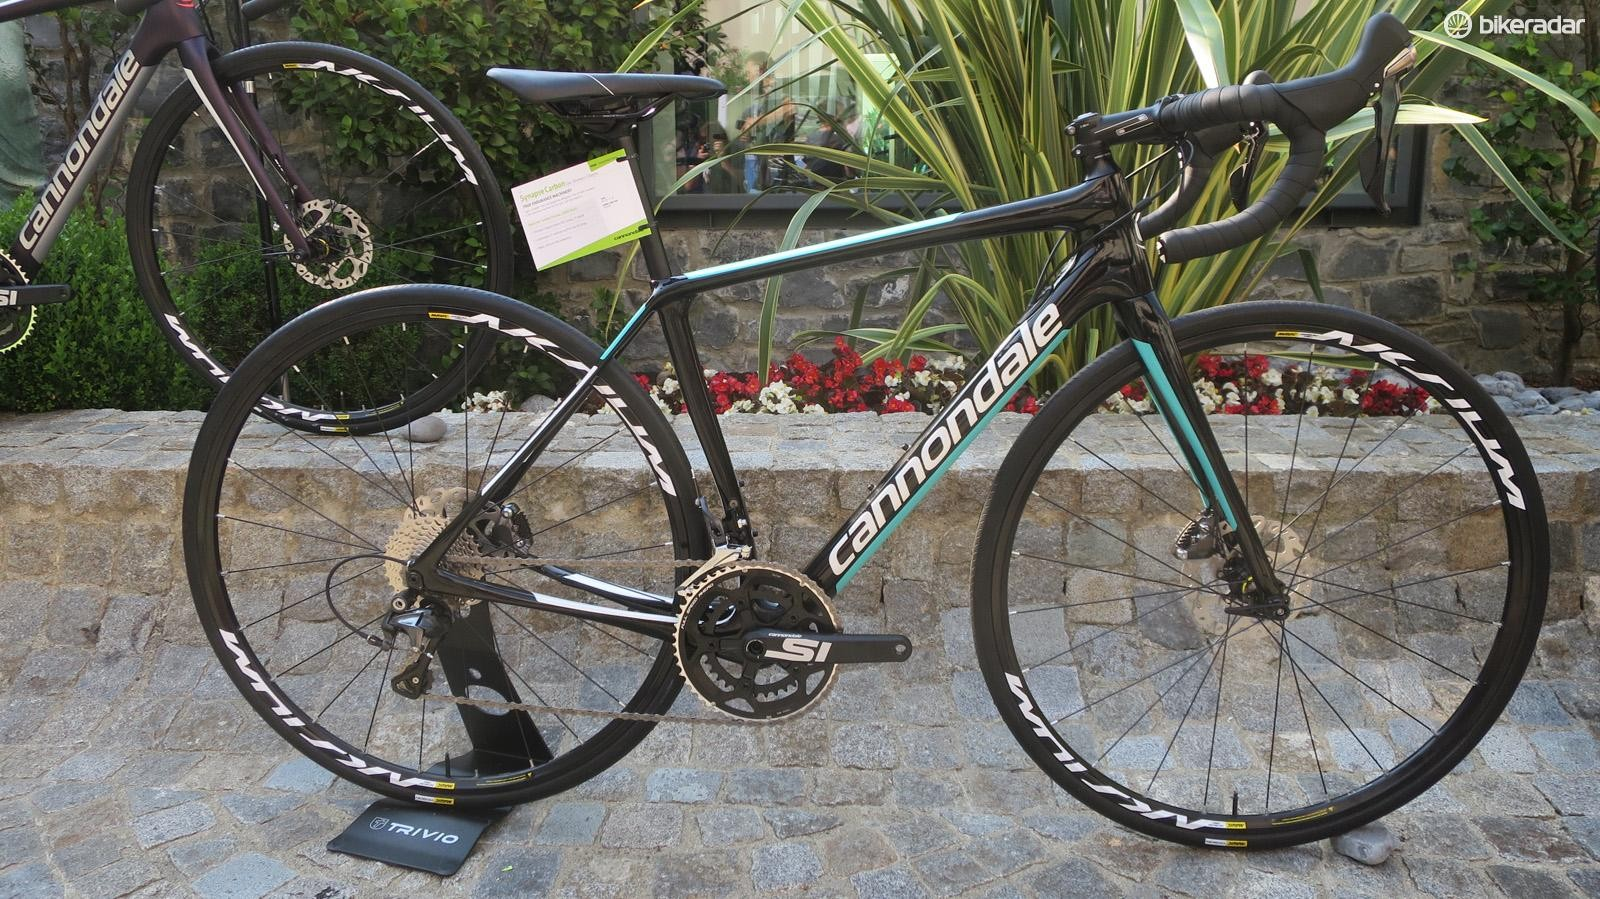 The women's range starts with this Ultegra equipped model